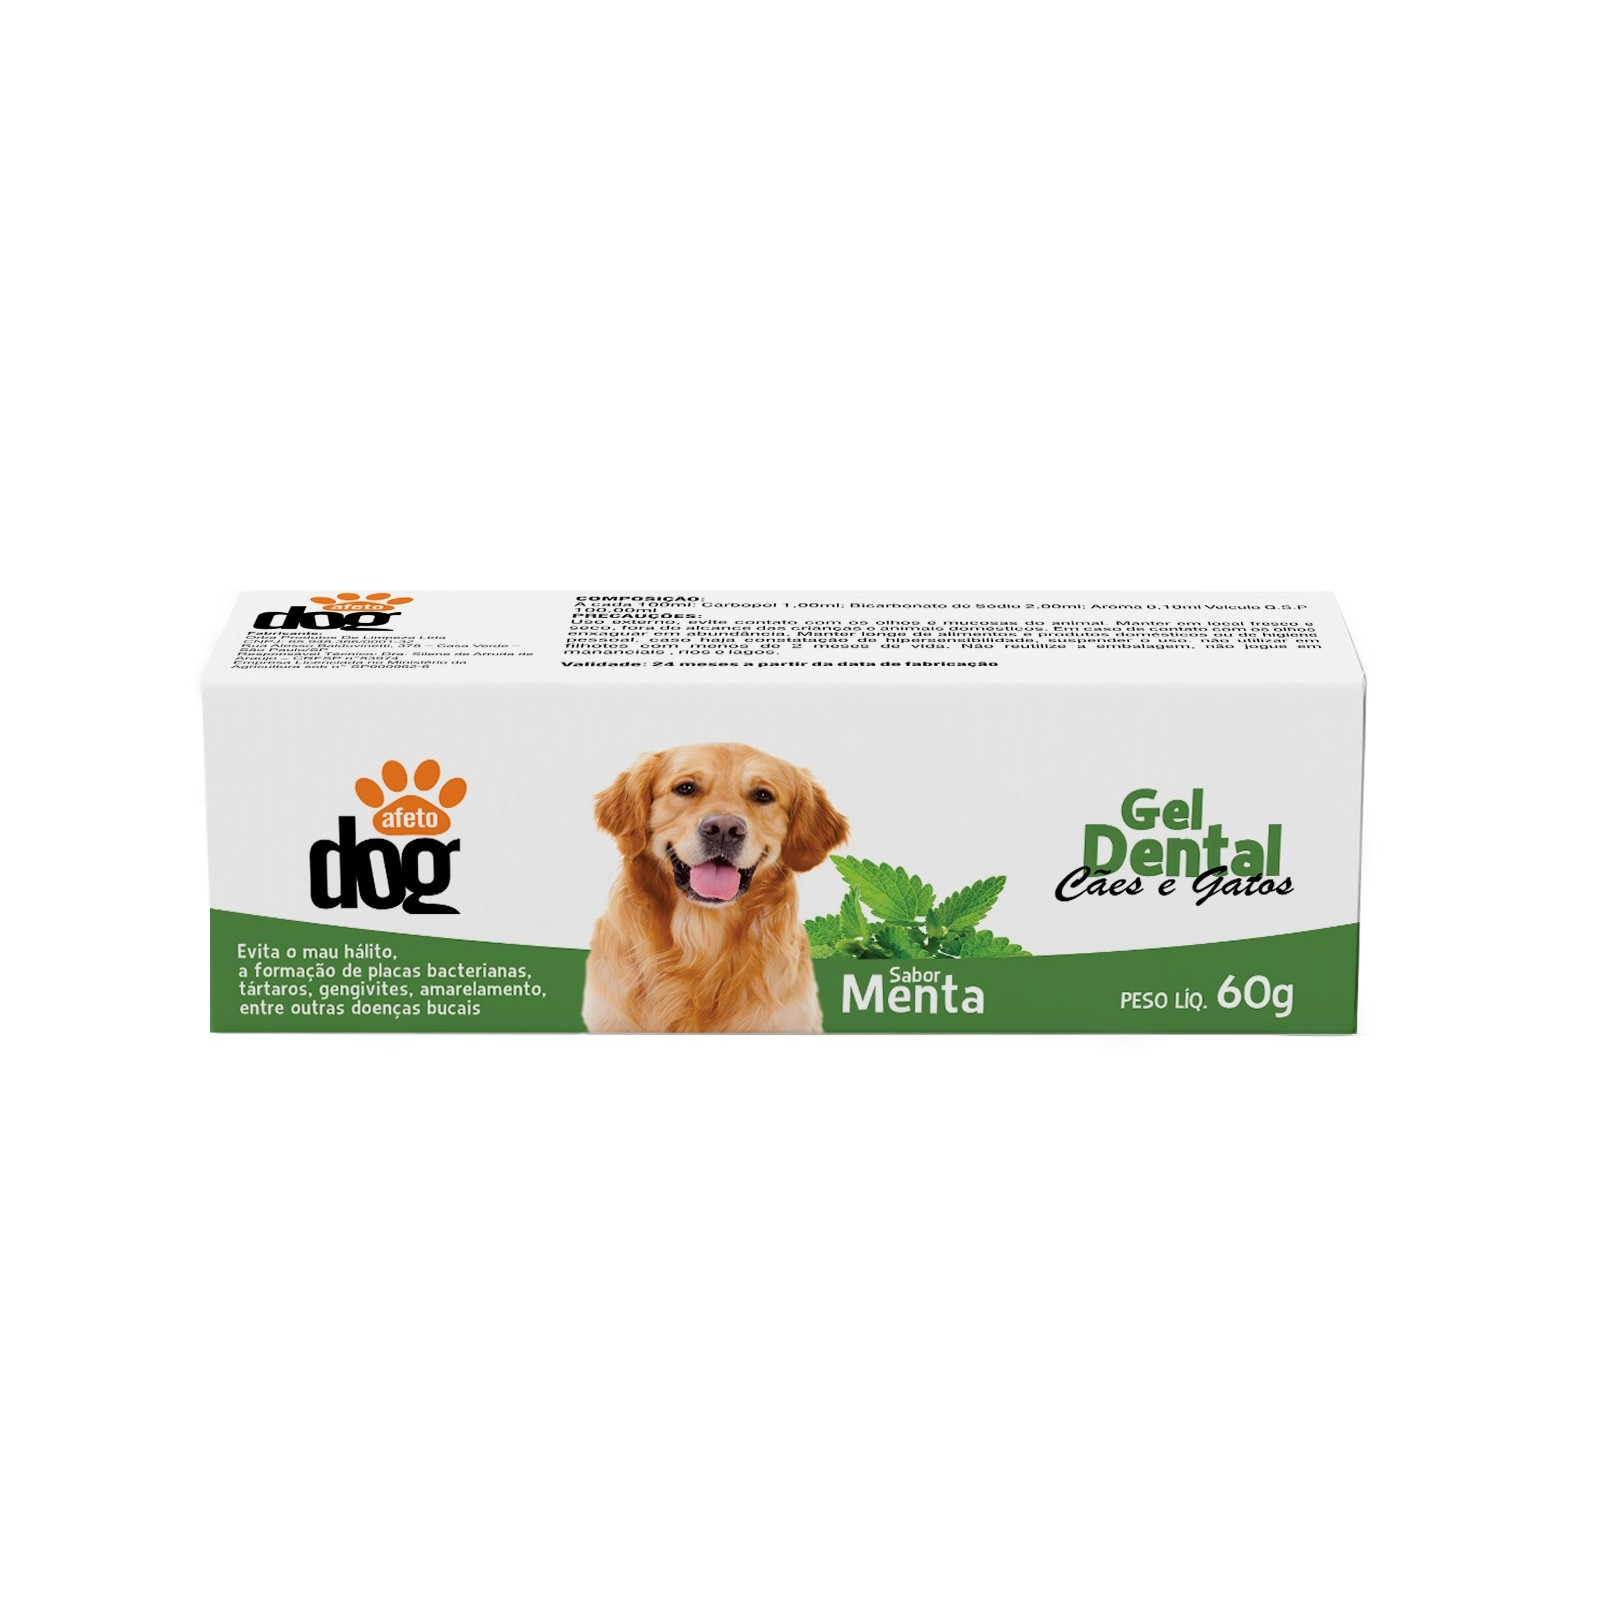 Gel Dental para Caes e Gatos 60g - Afeto Dog